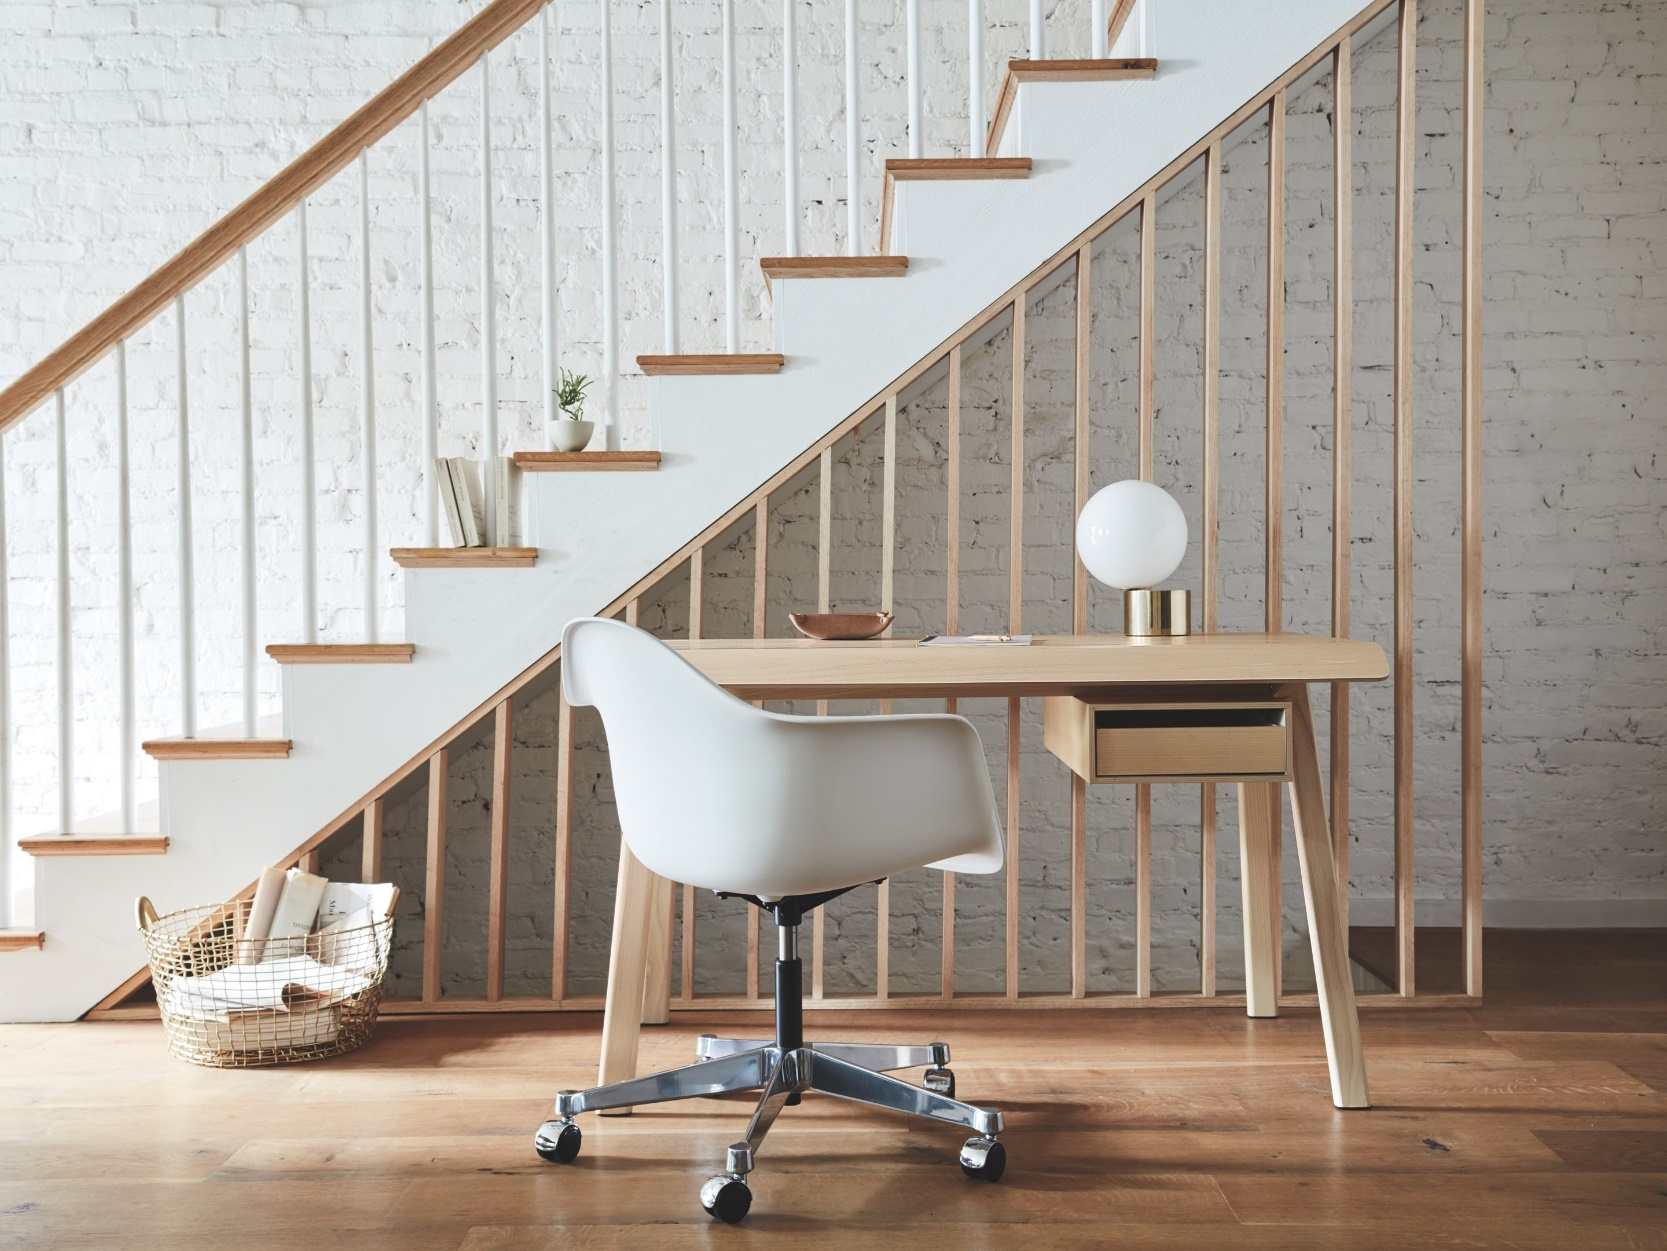 eames-office-chair-white-shell-with-armrests-mid-century-modern-home-office-furniture-for-sale-online